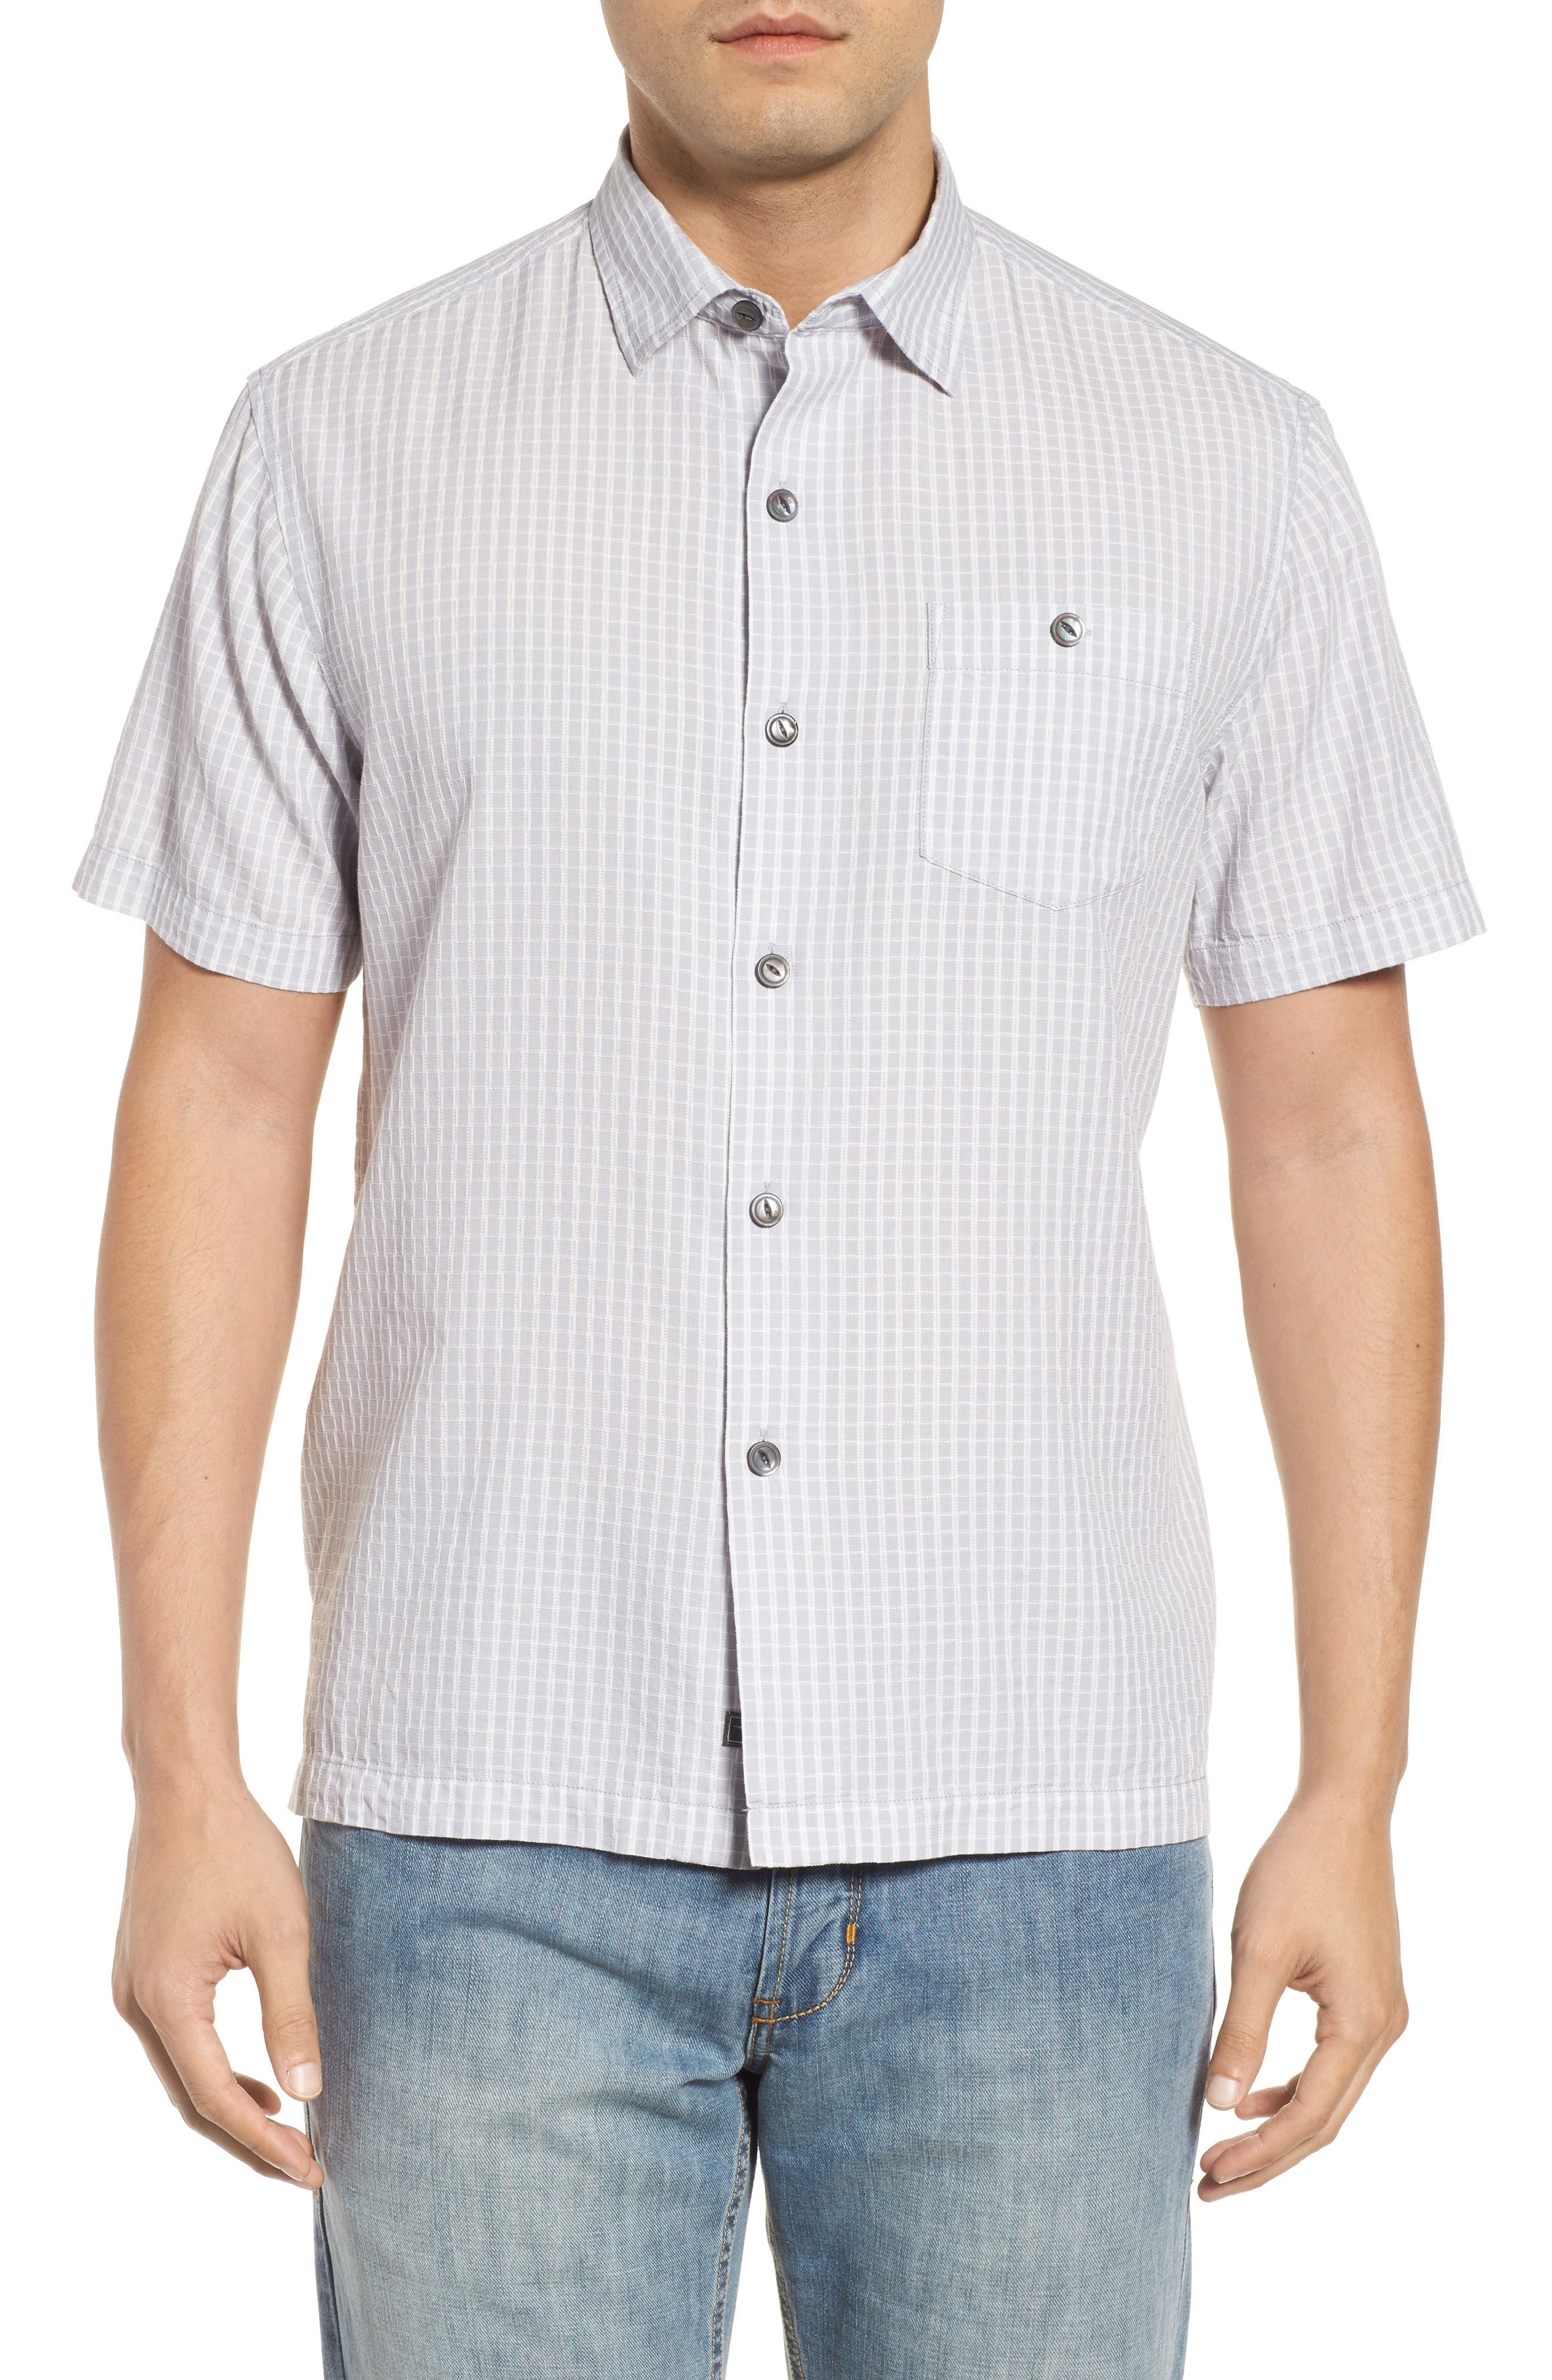 Once in a Tile Regular Fit Sport Shirt,                         Main,                         color, 050